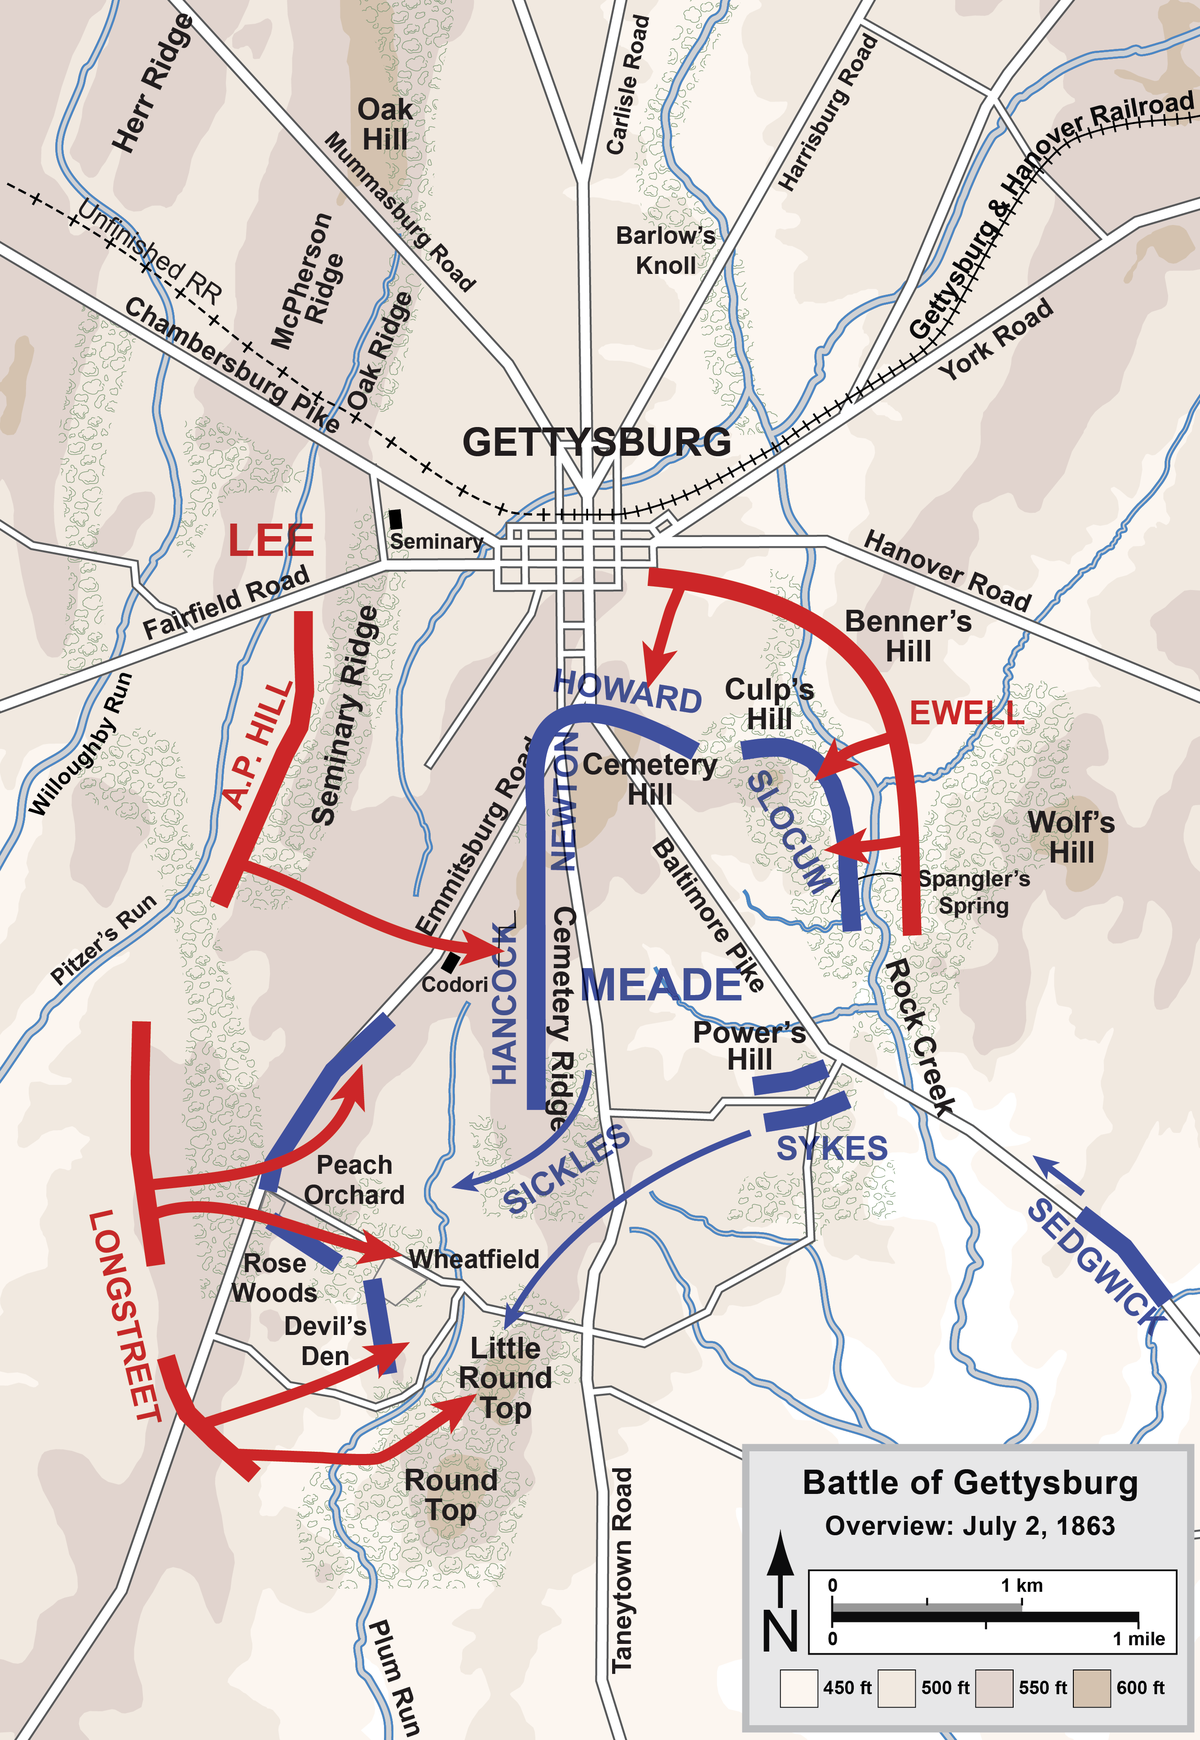 Battle of Gettysburg Second Day  Wikipedia